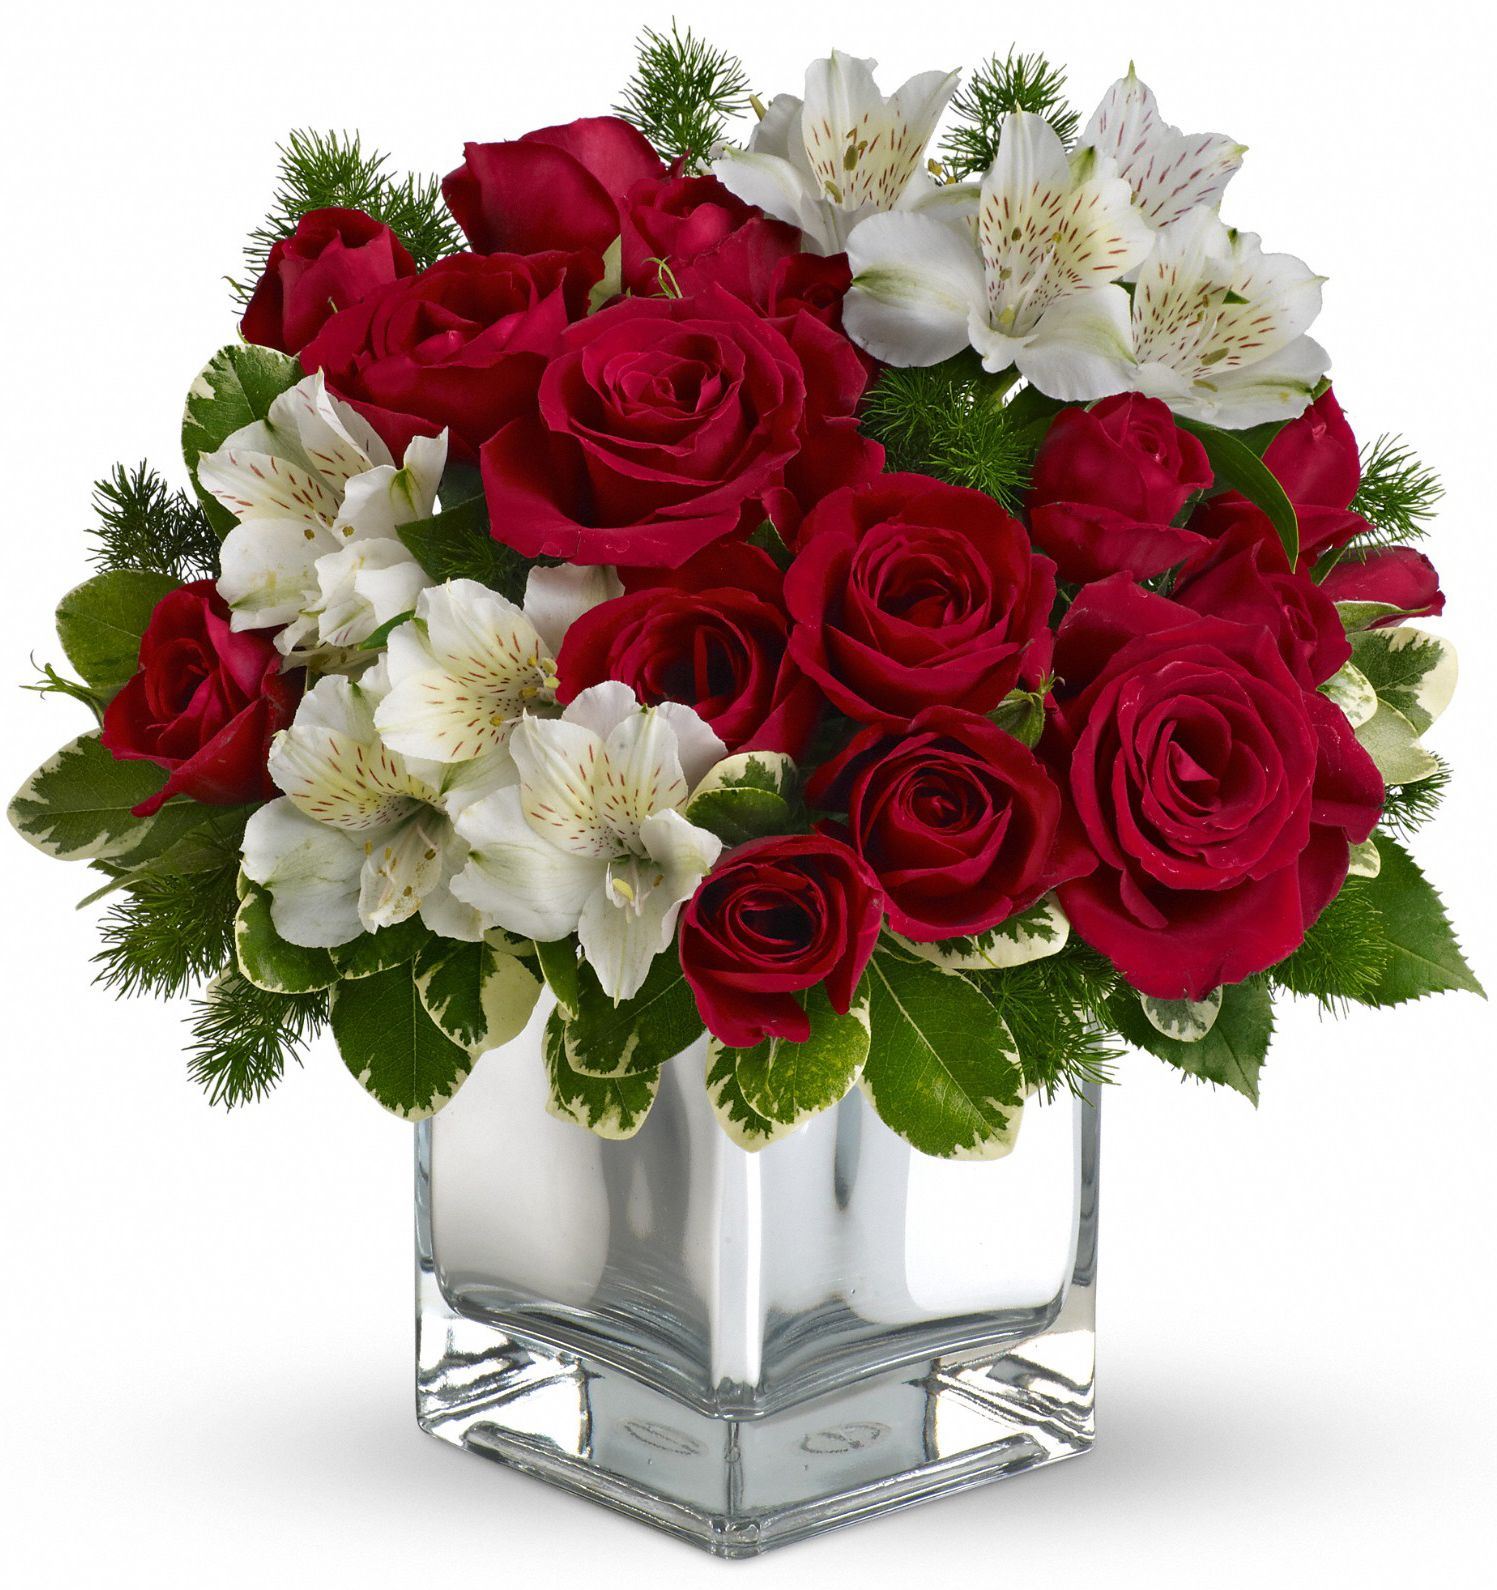 The Stylish Christmas Flower Arrangement Includes Red